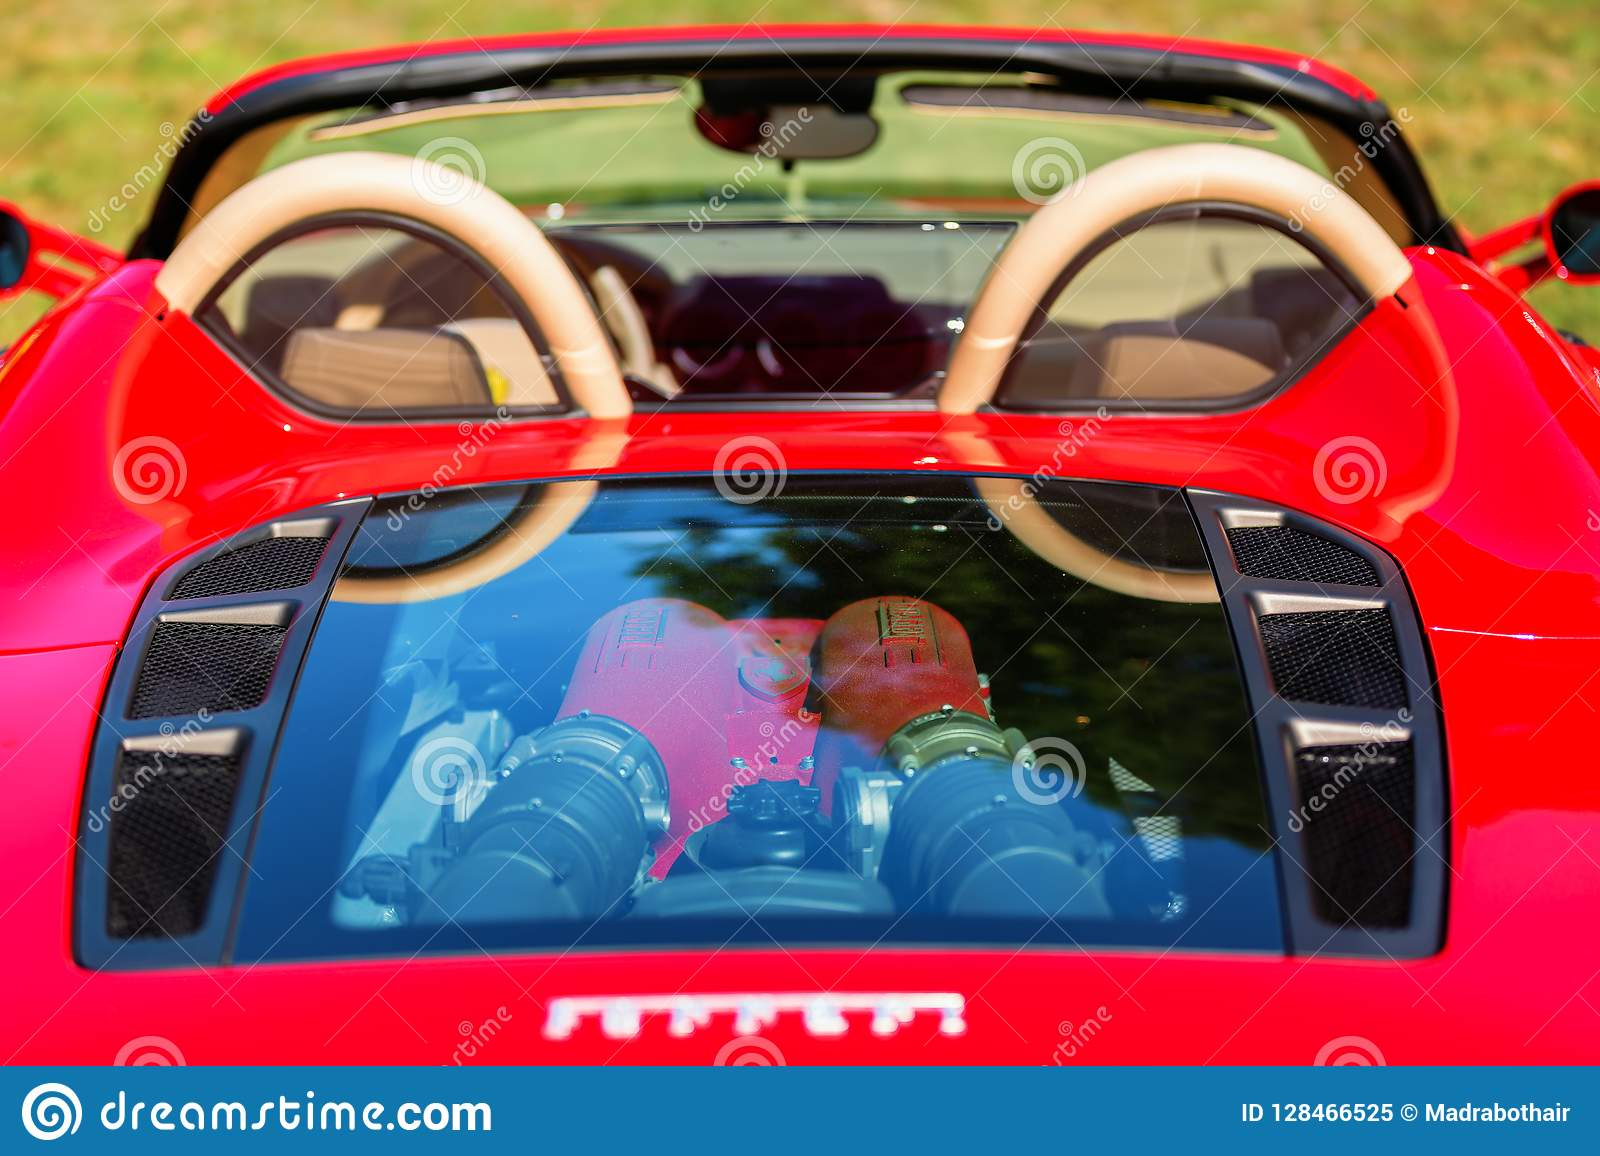 Rear View Of A Ferrari Sports Car With Visible Motor Editorial Image Image Of Ferrari Automobile 128466525